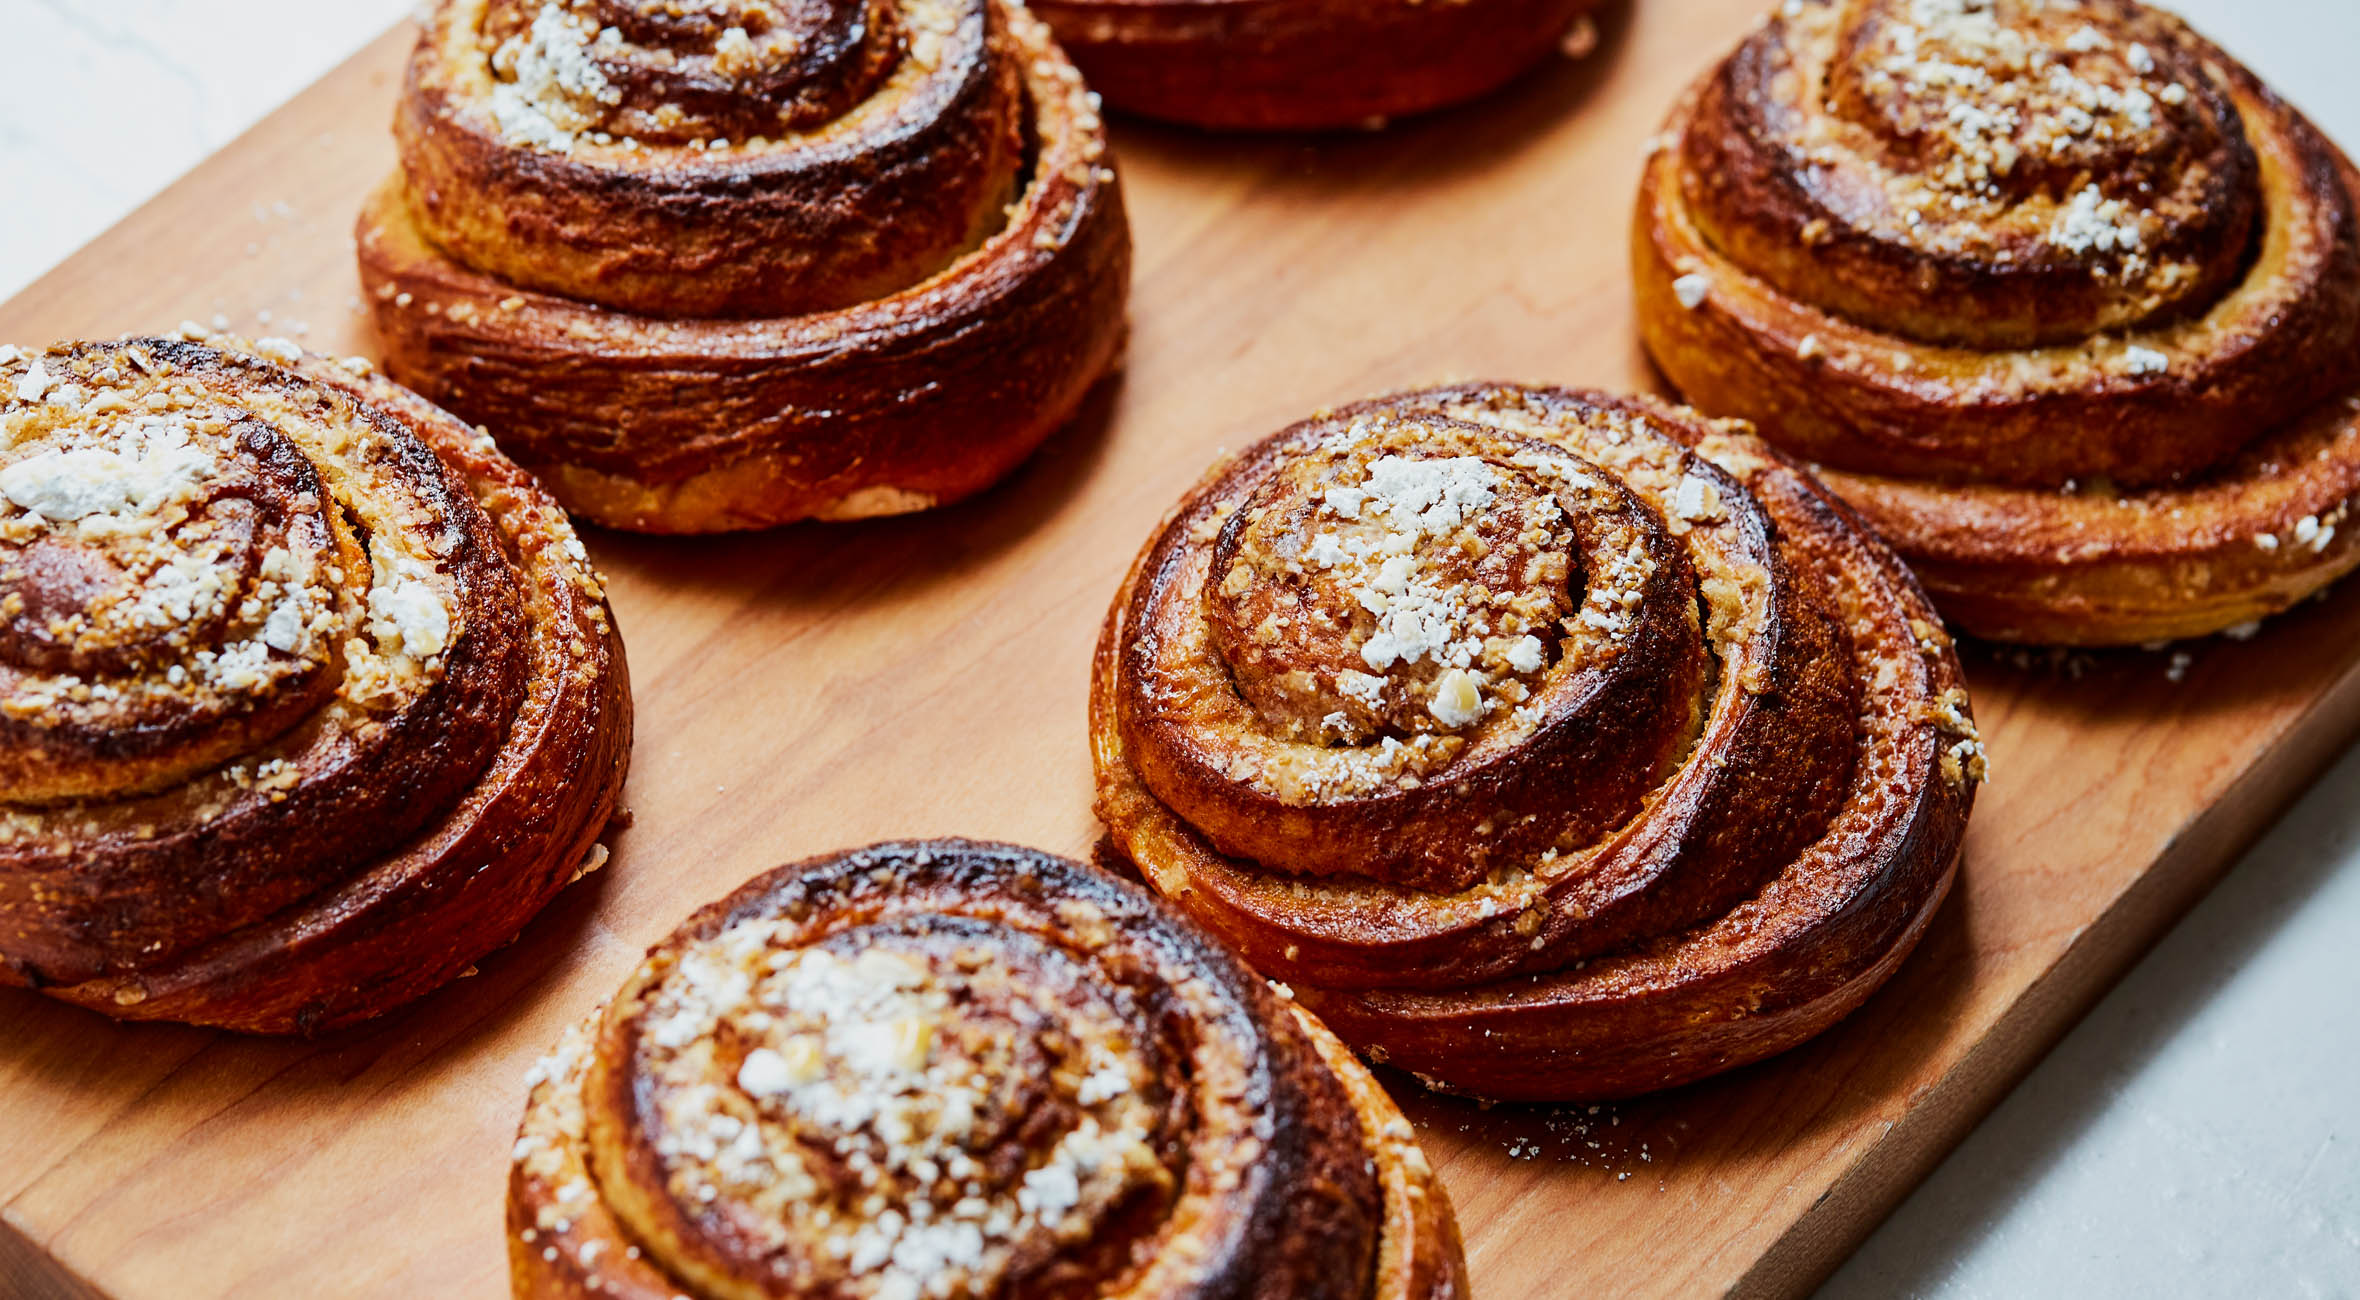 Choose Whatever You Like at Nick + Sons – From Handmade Croissants to Cinnamon Rolls, Sourdough Bread and Coffee